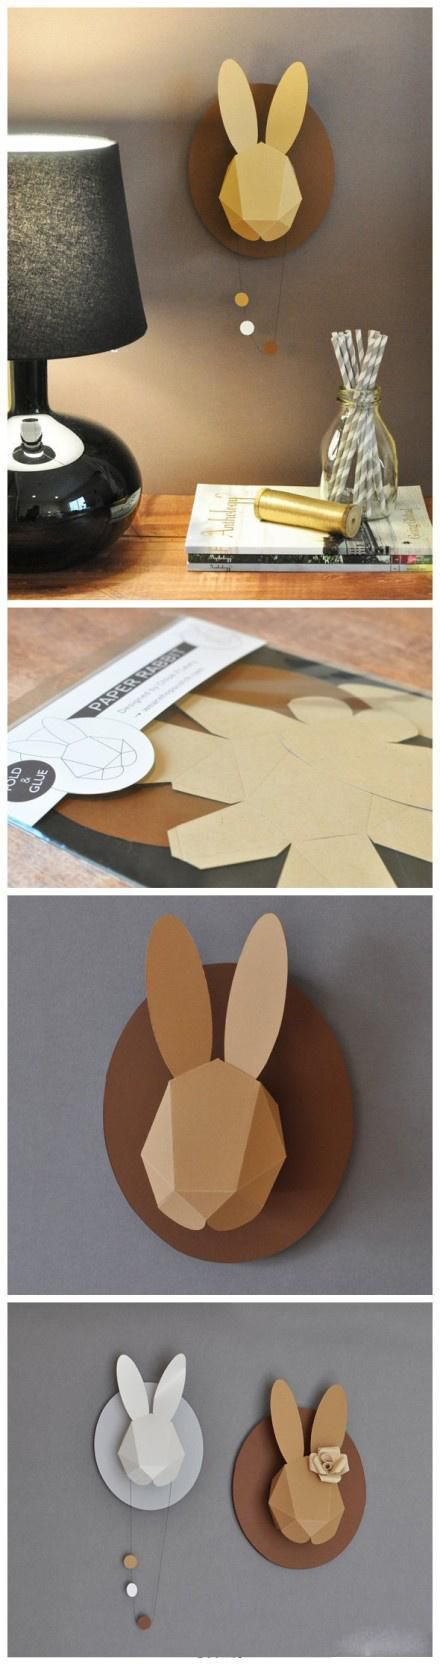 DIY Bunny Wall Art: Easter Parties, Idea, Animal Head, Baby Bunnies, Cute Bunnies, Rabbit Art, Paper Wall, Bunnies Head, Chloe Fleuri